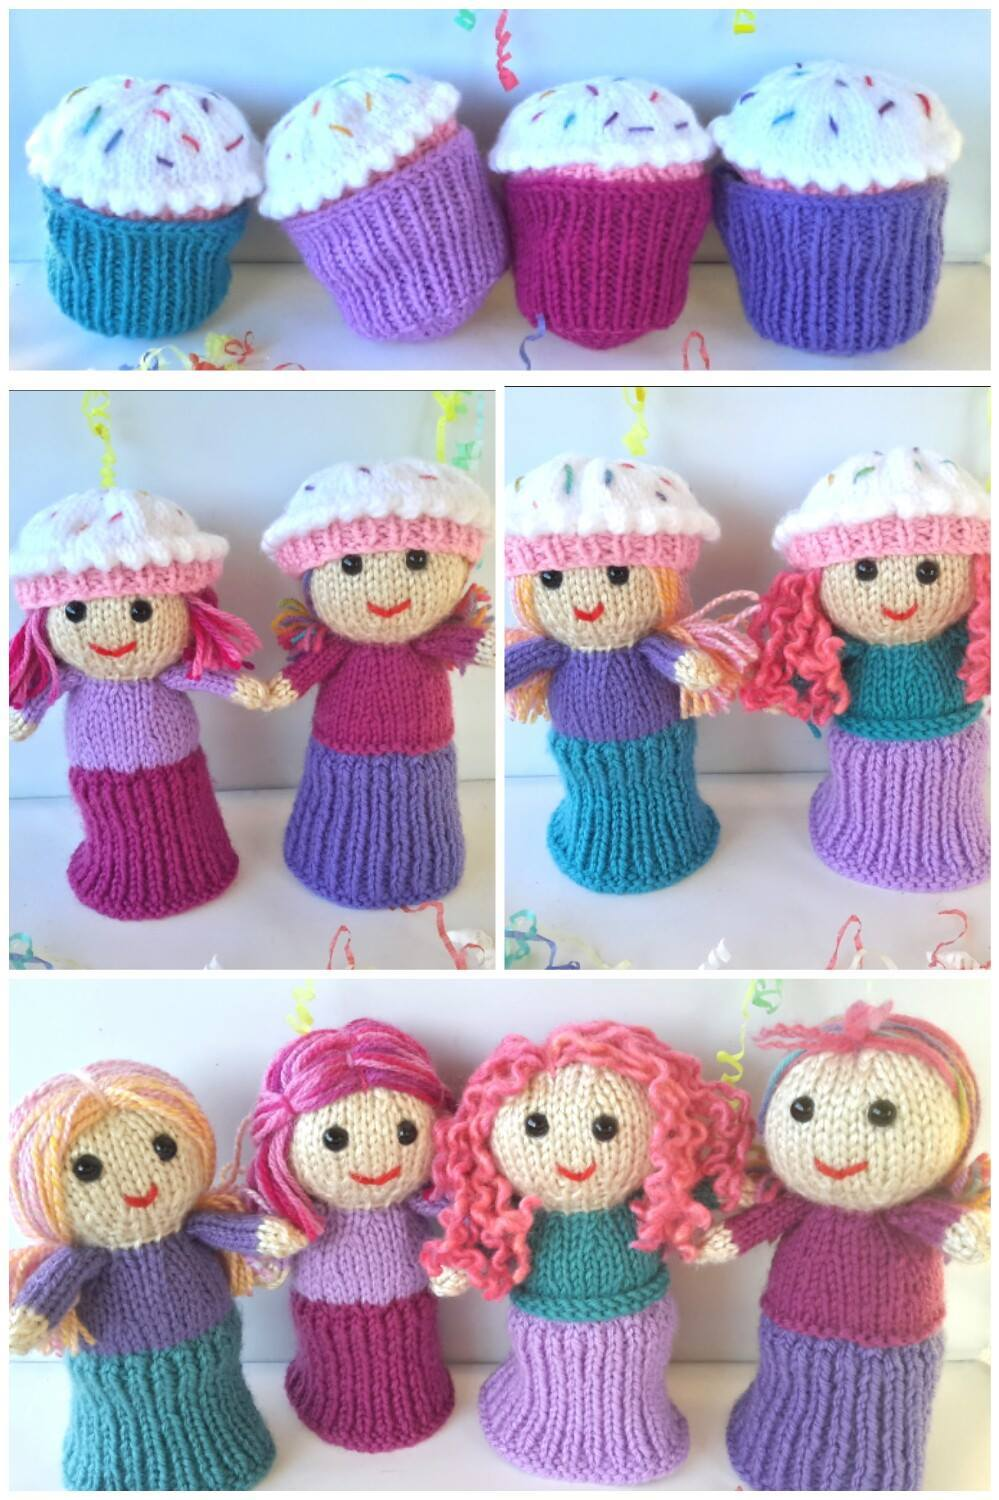 Kriskrafter cutie cupcake dolls free knitting pattern cutie cupcake dolls free knitting pattern bankloansurffo Image collections